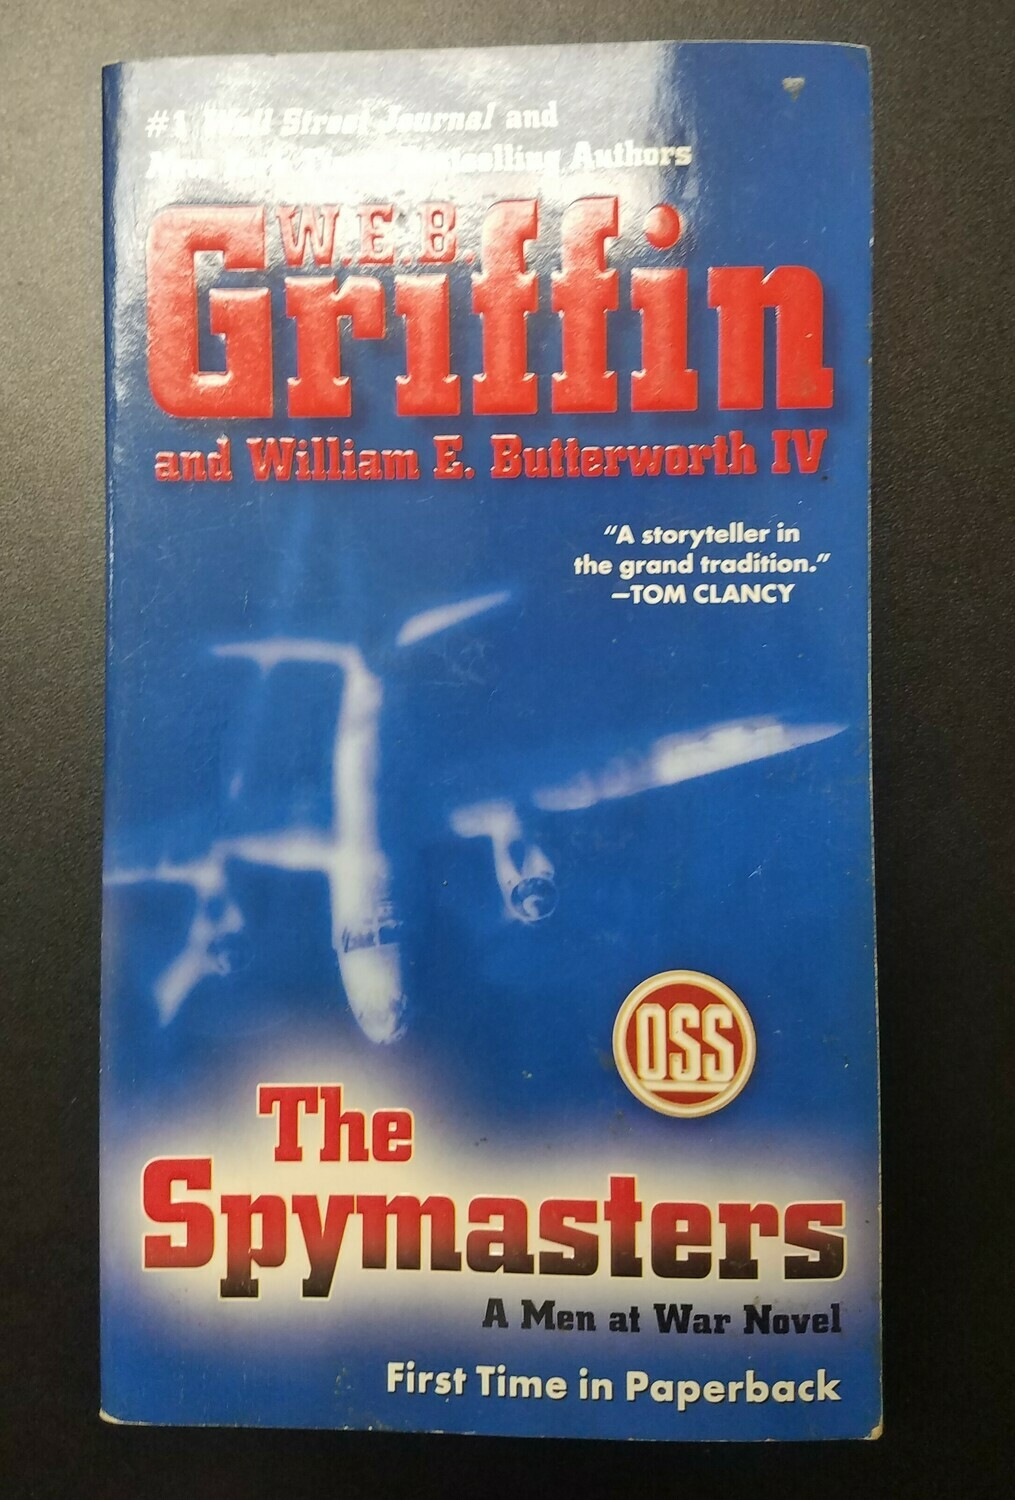 The Spymasters by W.E.B. Griffin and William E. Butterworth IV